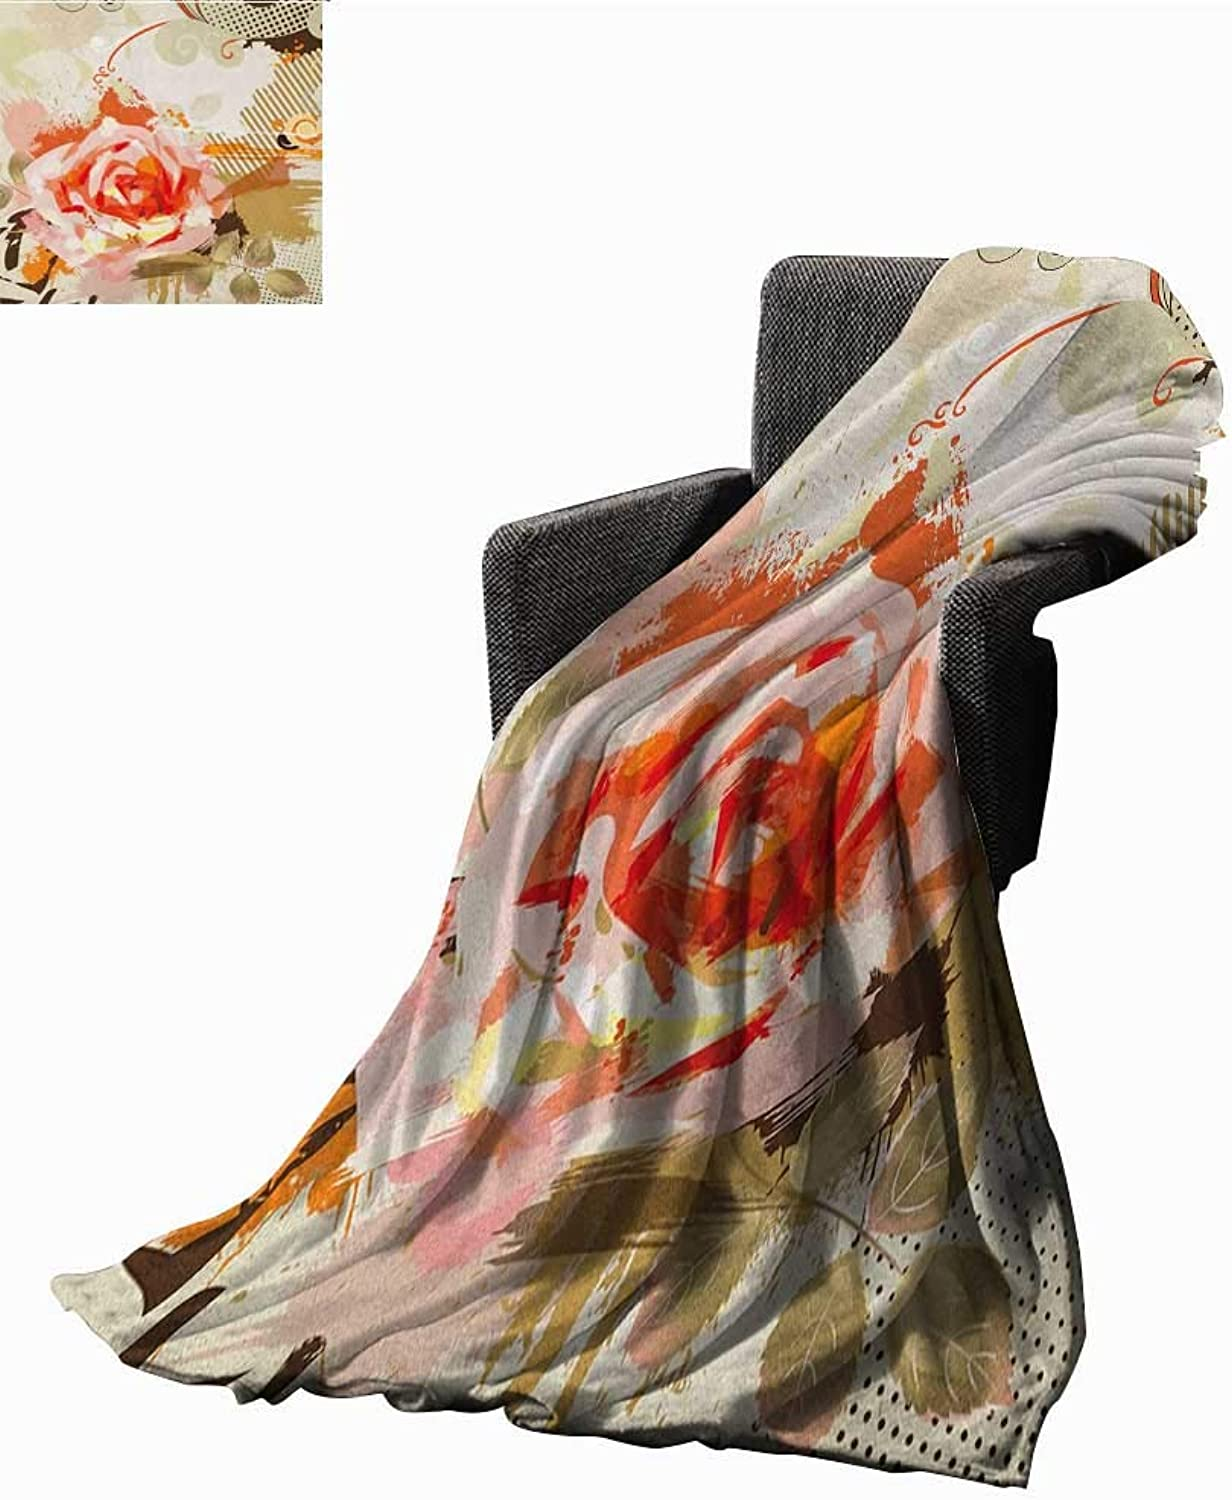 WilliamsDecor Bed or Couch 60  x 35 pink Lightweight Blanket Abstract Artistic Composition with Big Grunge pink and Floral Retro Motifs Print Summer Quilt Comforter Khaki orange Pink